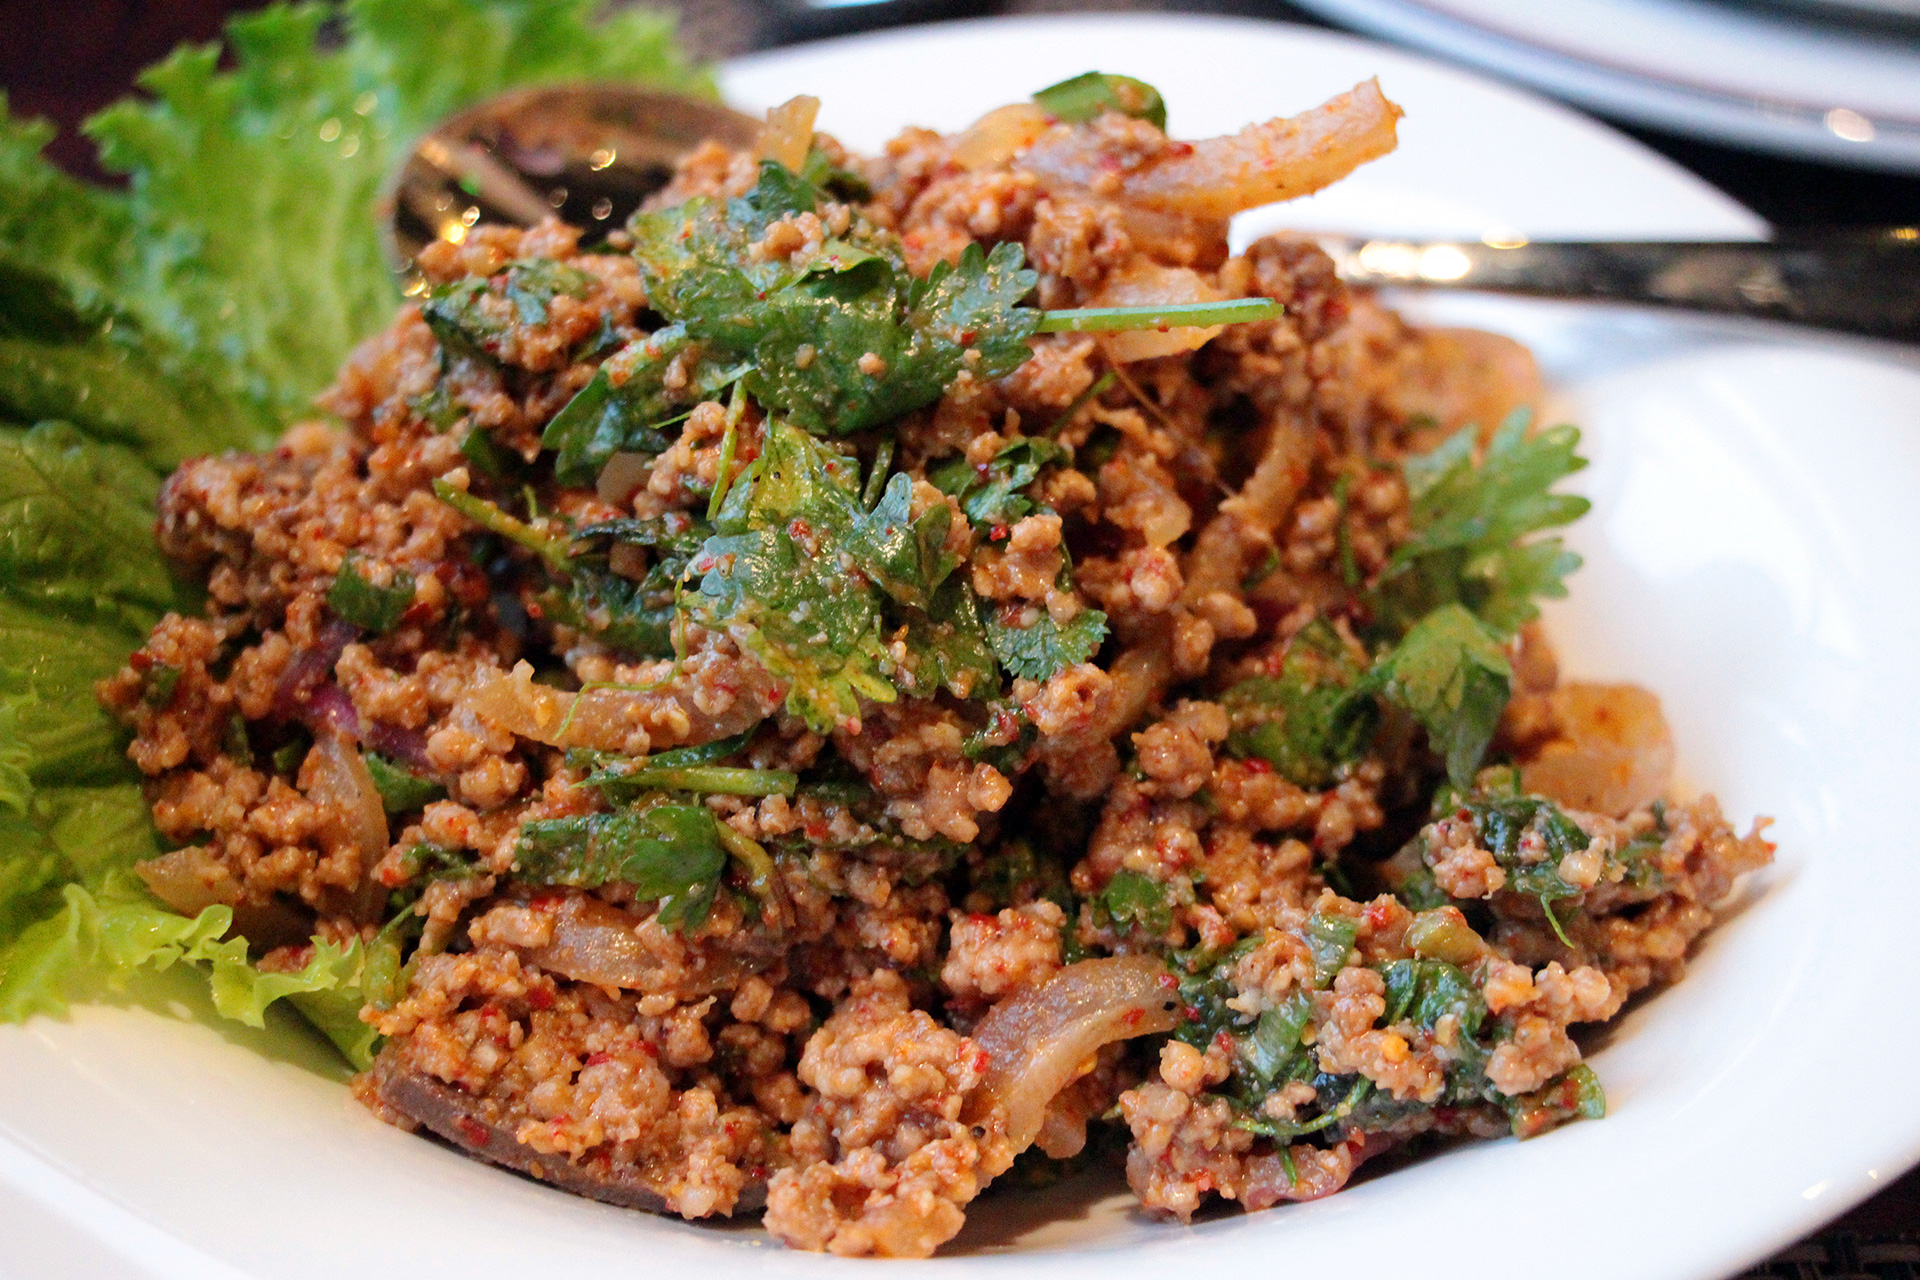 Ground Pork Salad - Larb Pork